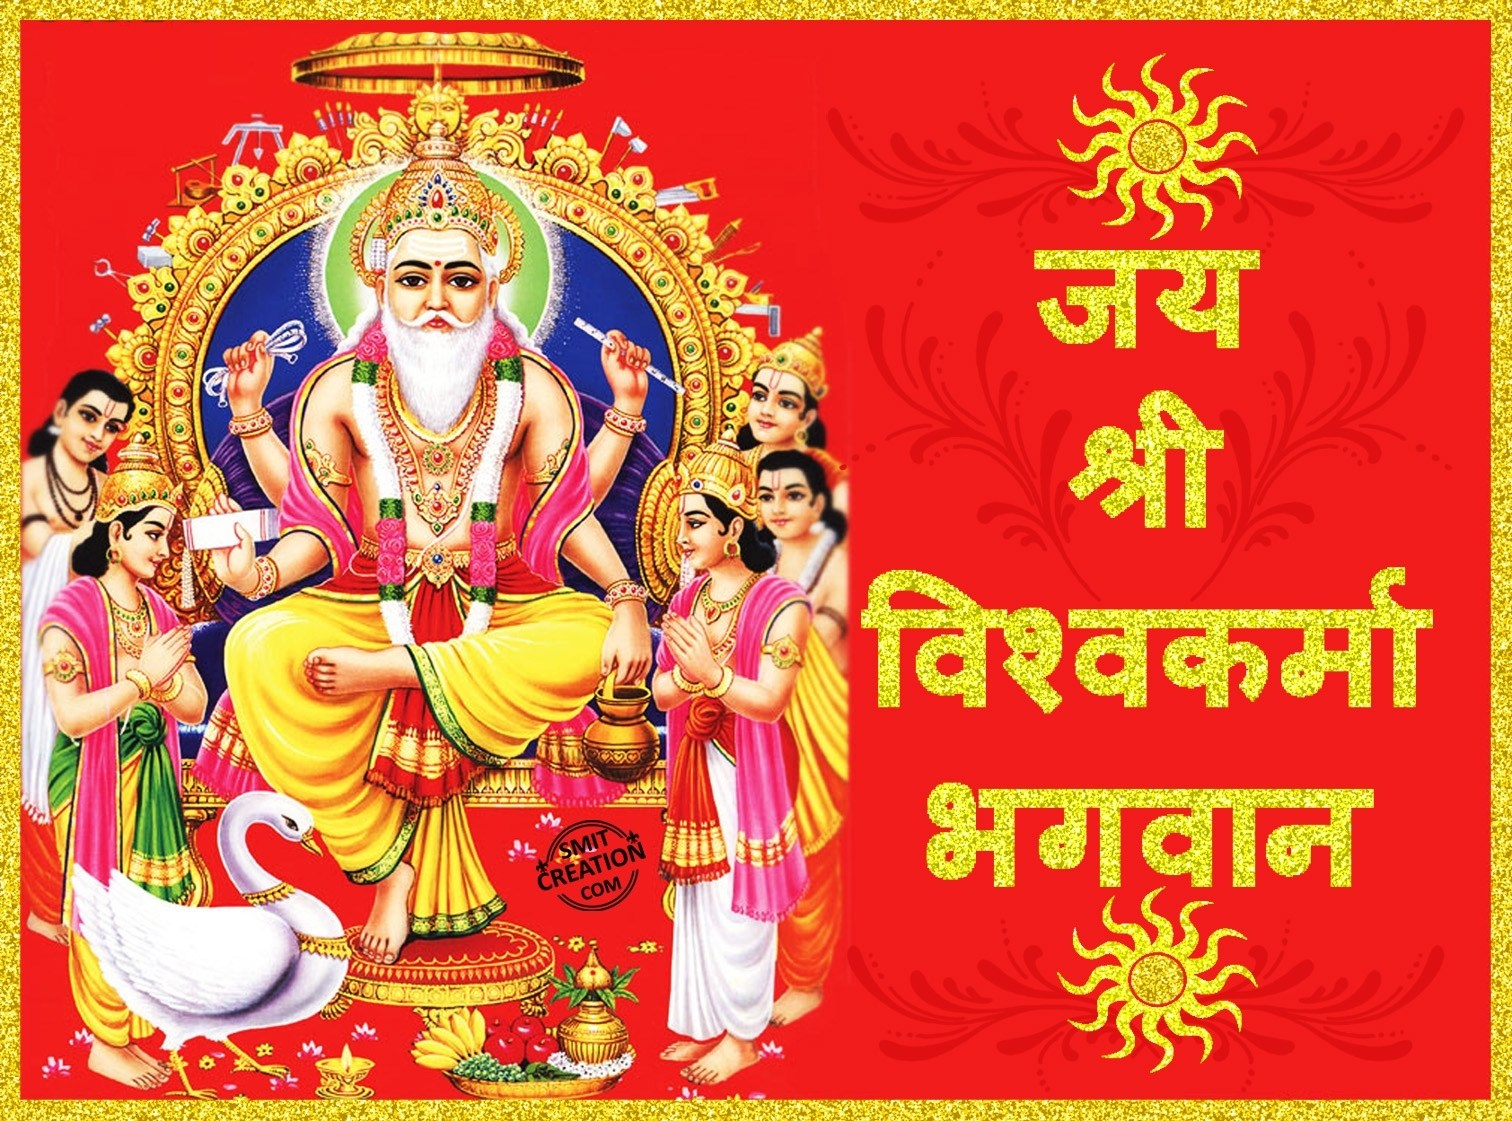 Vishwakarma Puja 2018 Photos